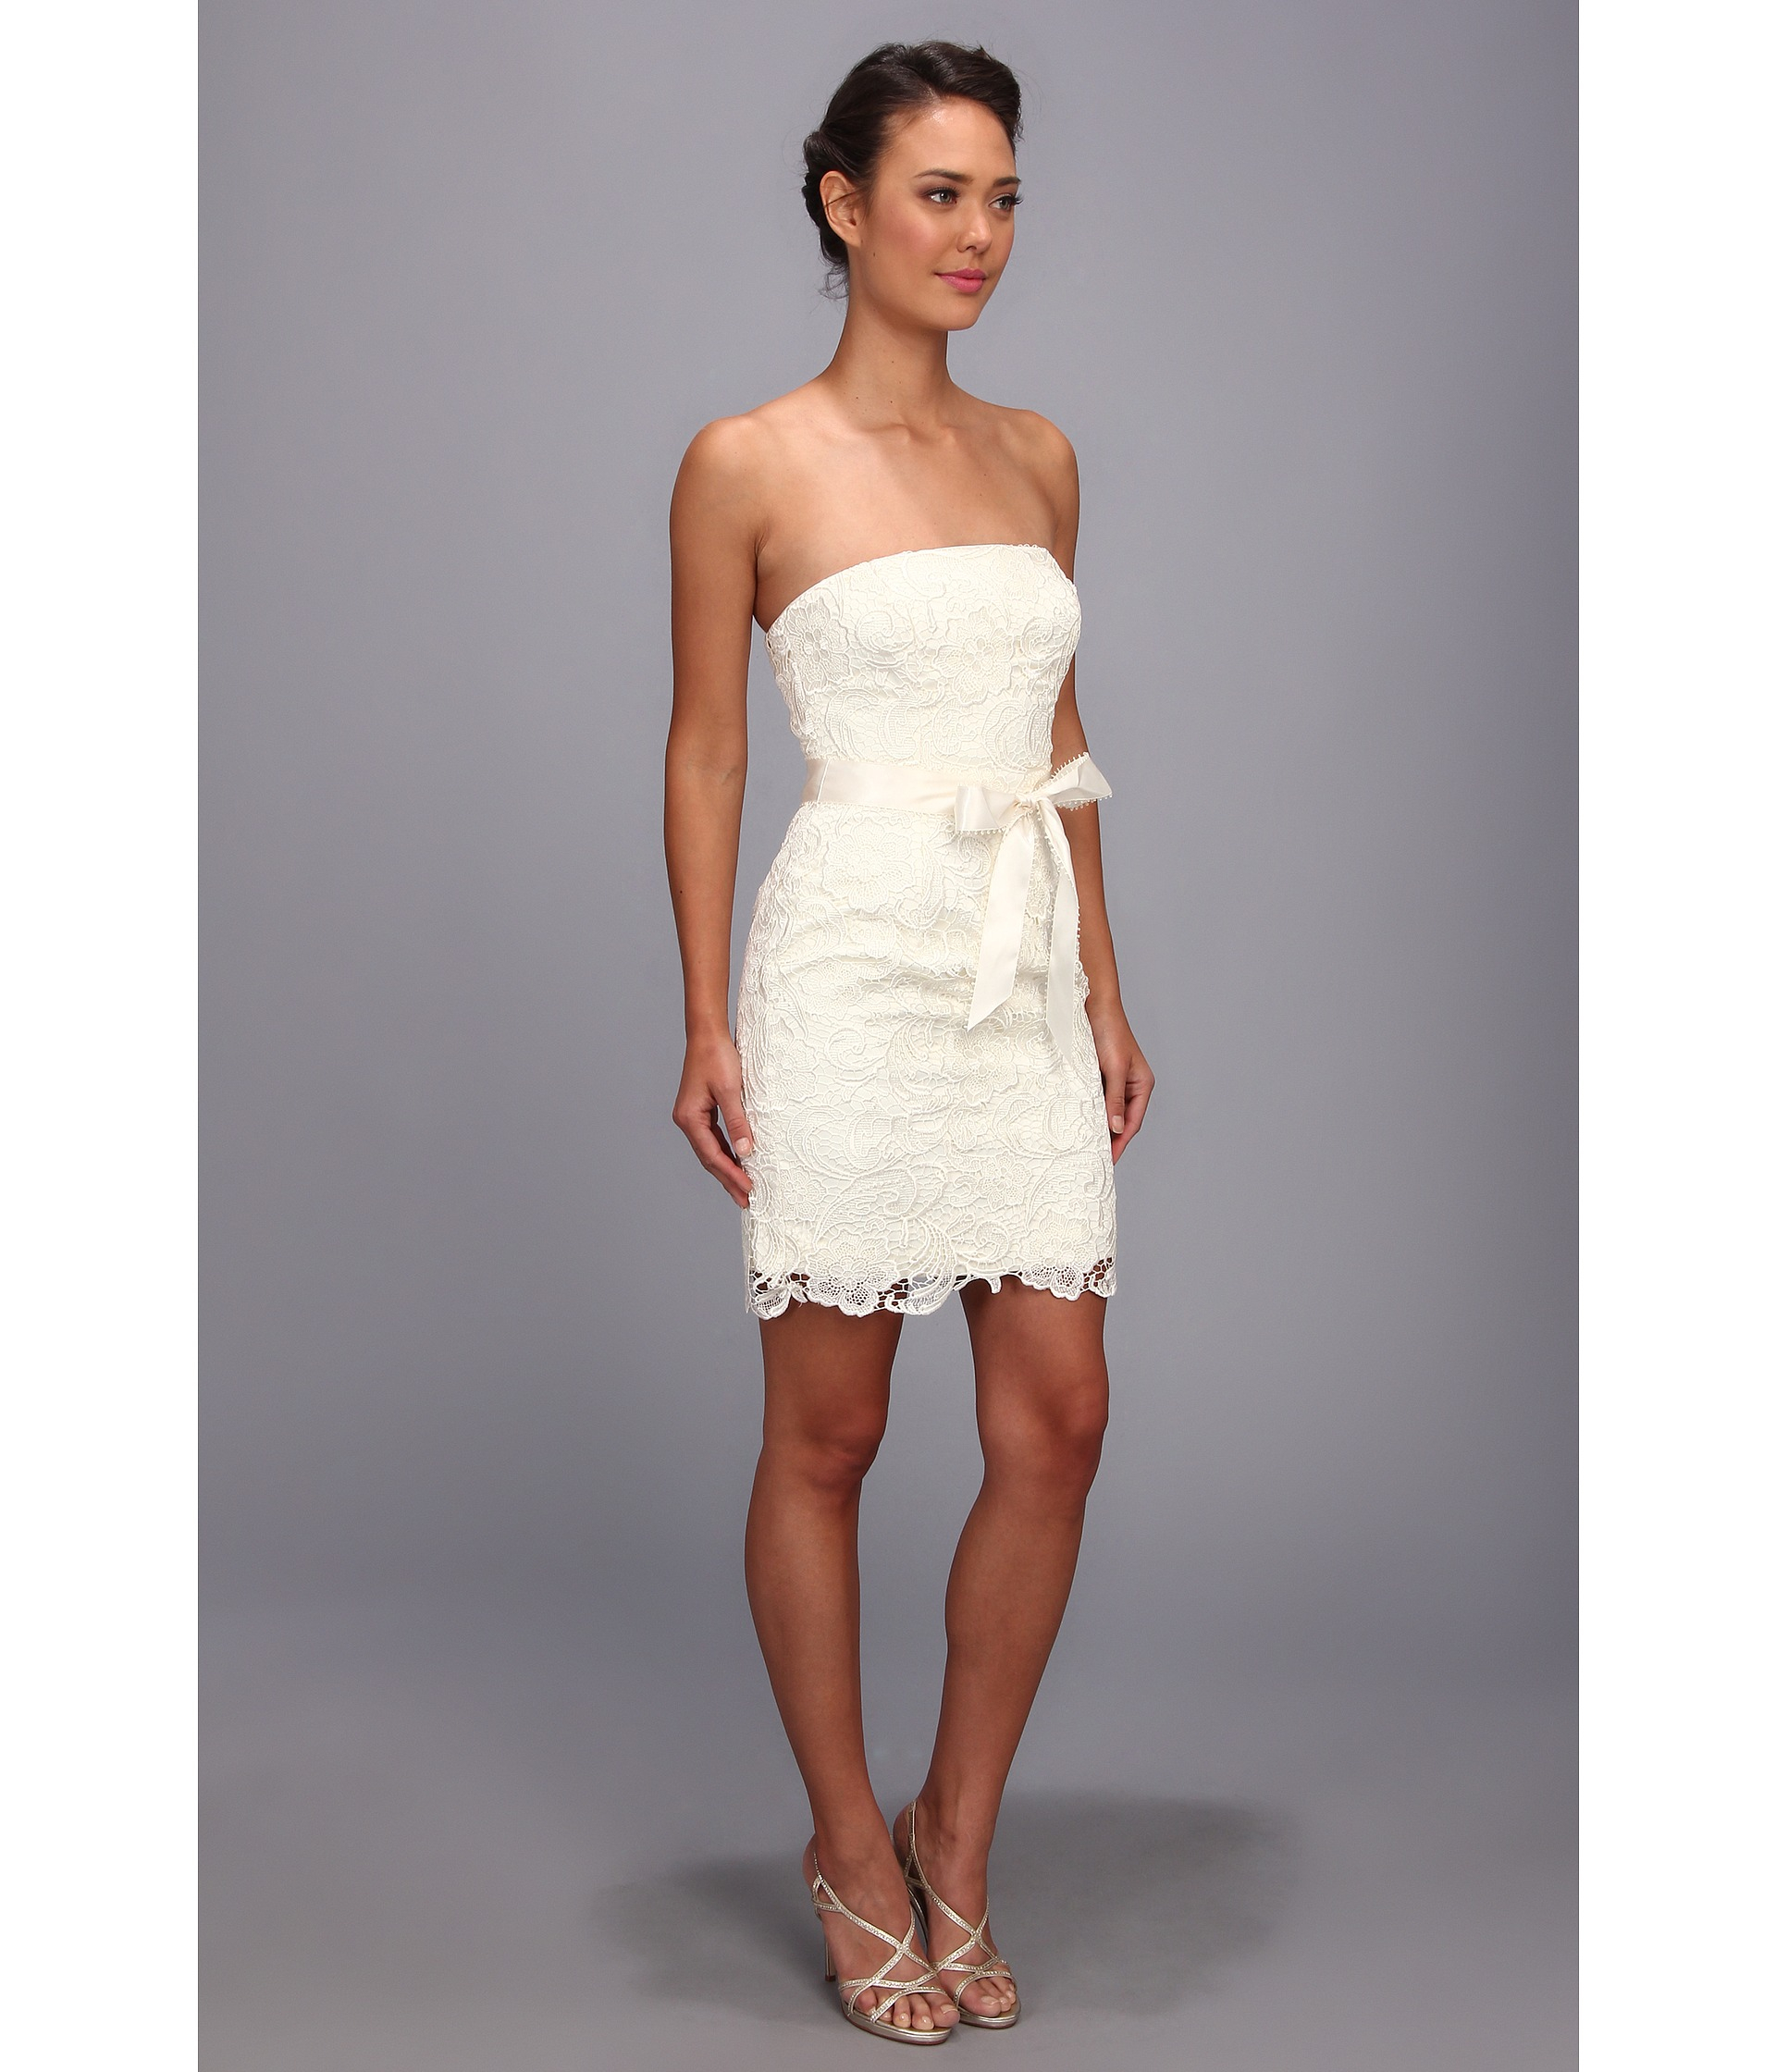 9d60d51d Gallery. Previously sold at: Zappos · Women's Adrianna Papell Lace Dress  Women's Adrianna Papell Sheath ...